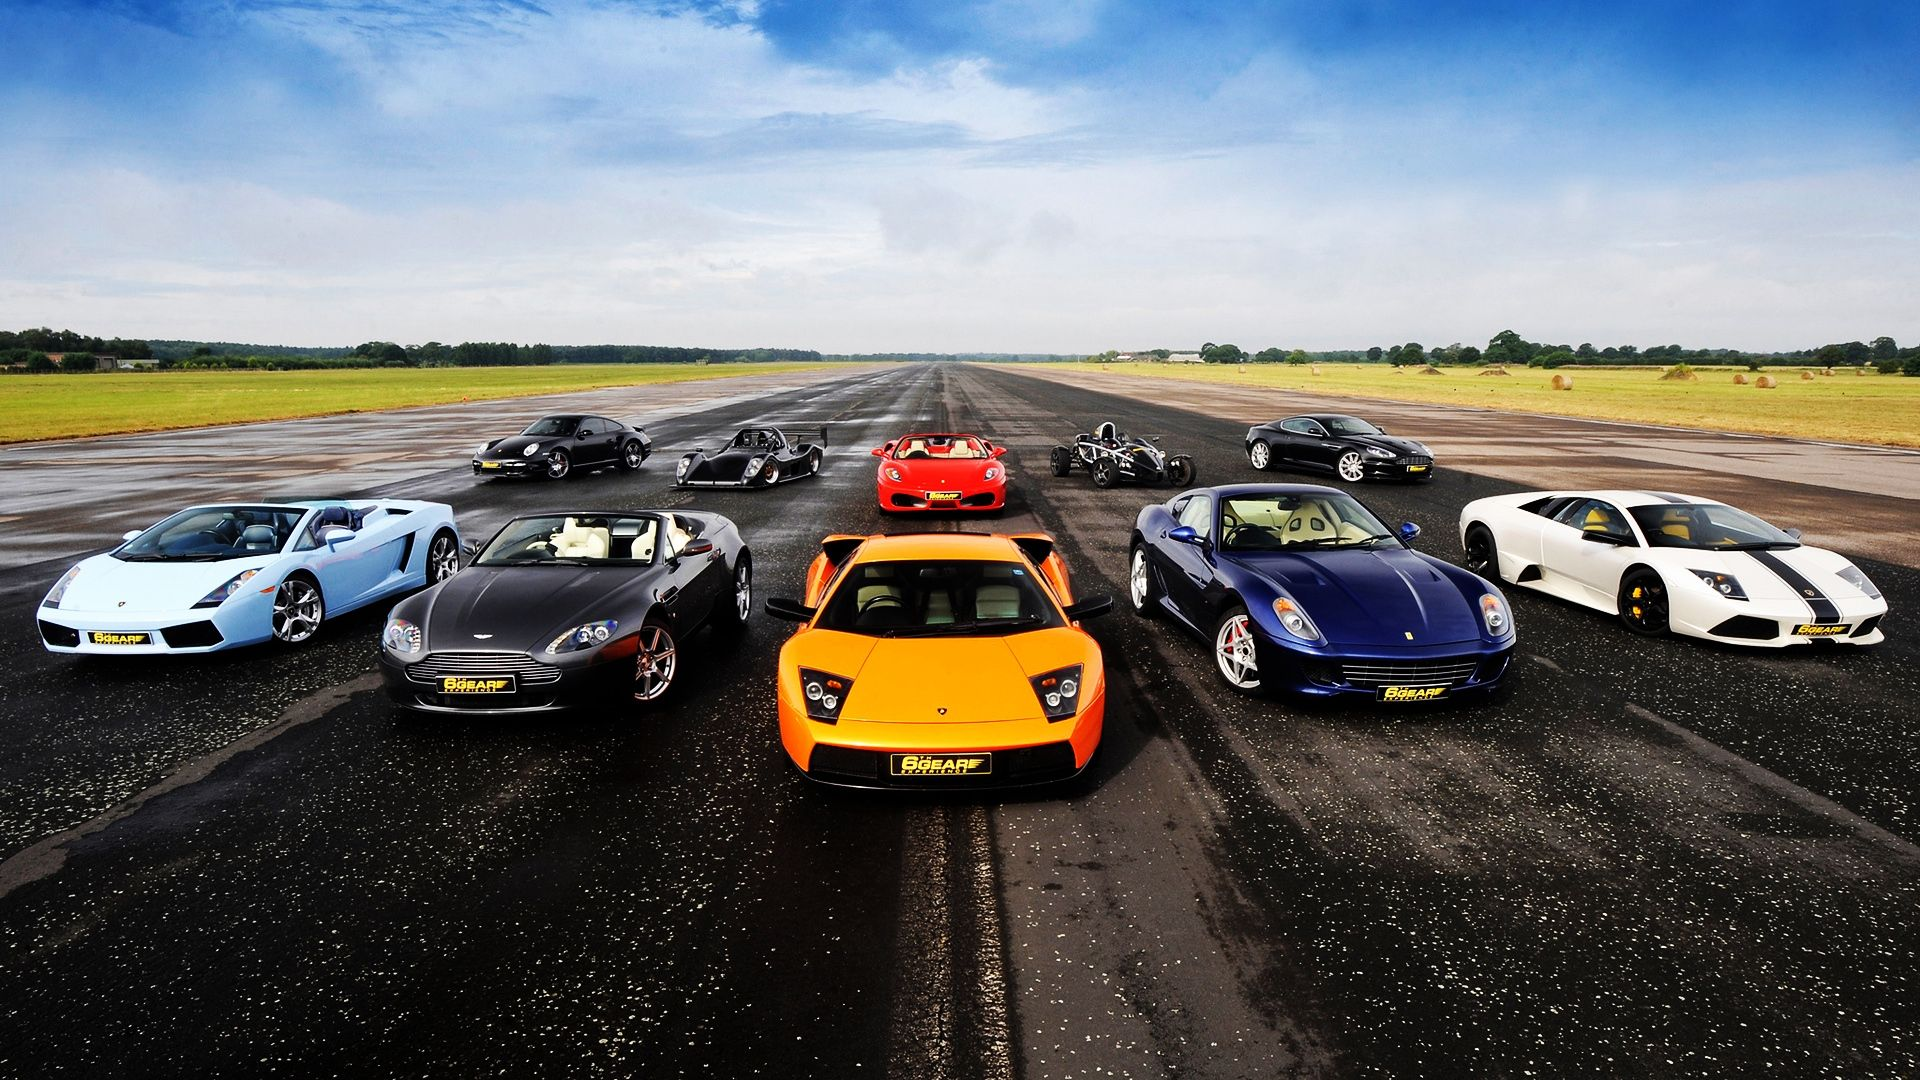 Super Cars Which One is Best Auto Magazine 1920x1080